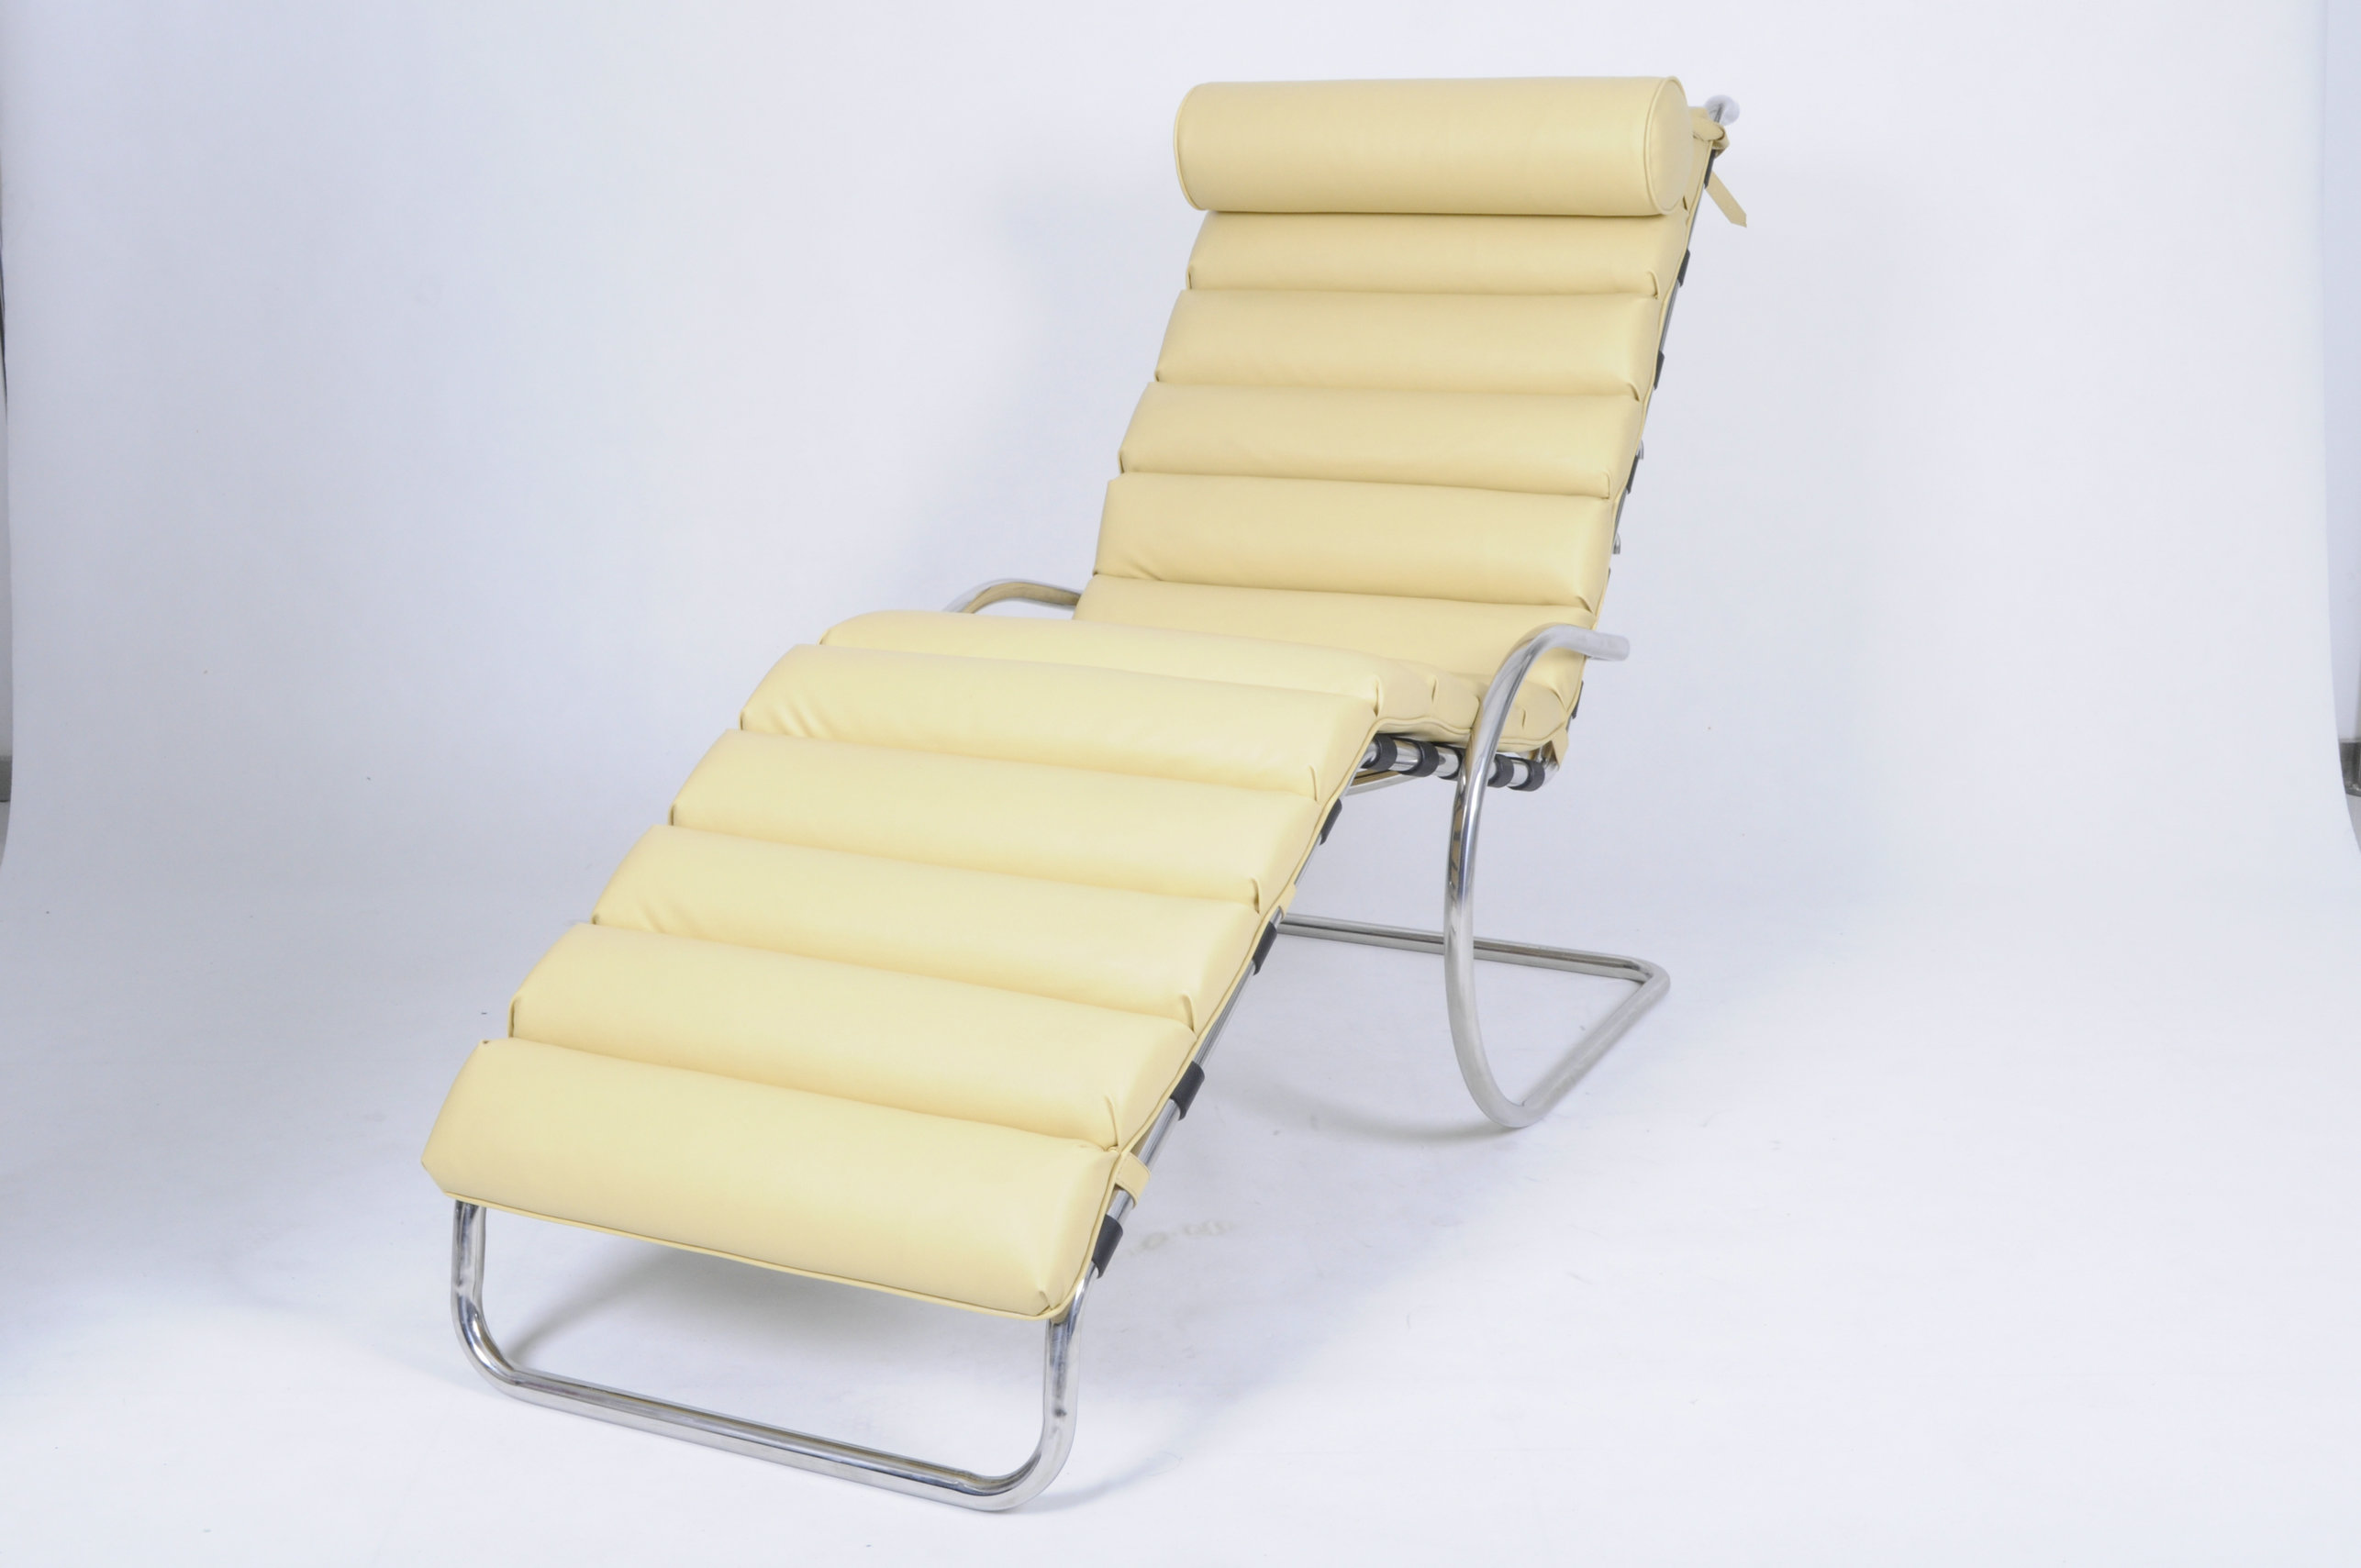 MR chaise lounge chair